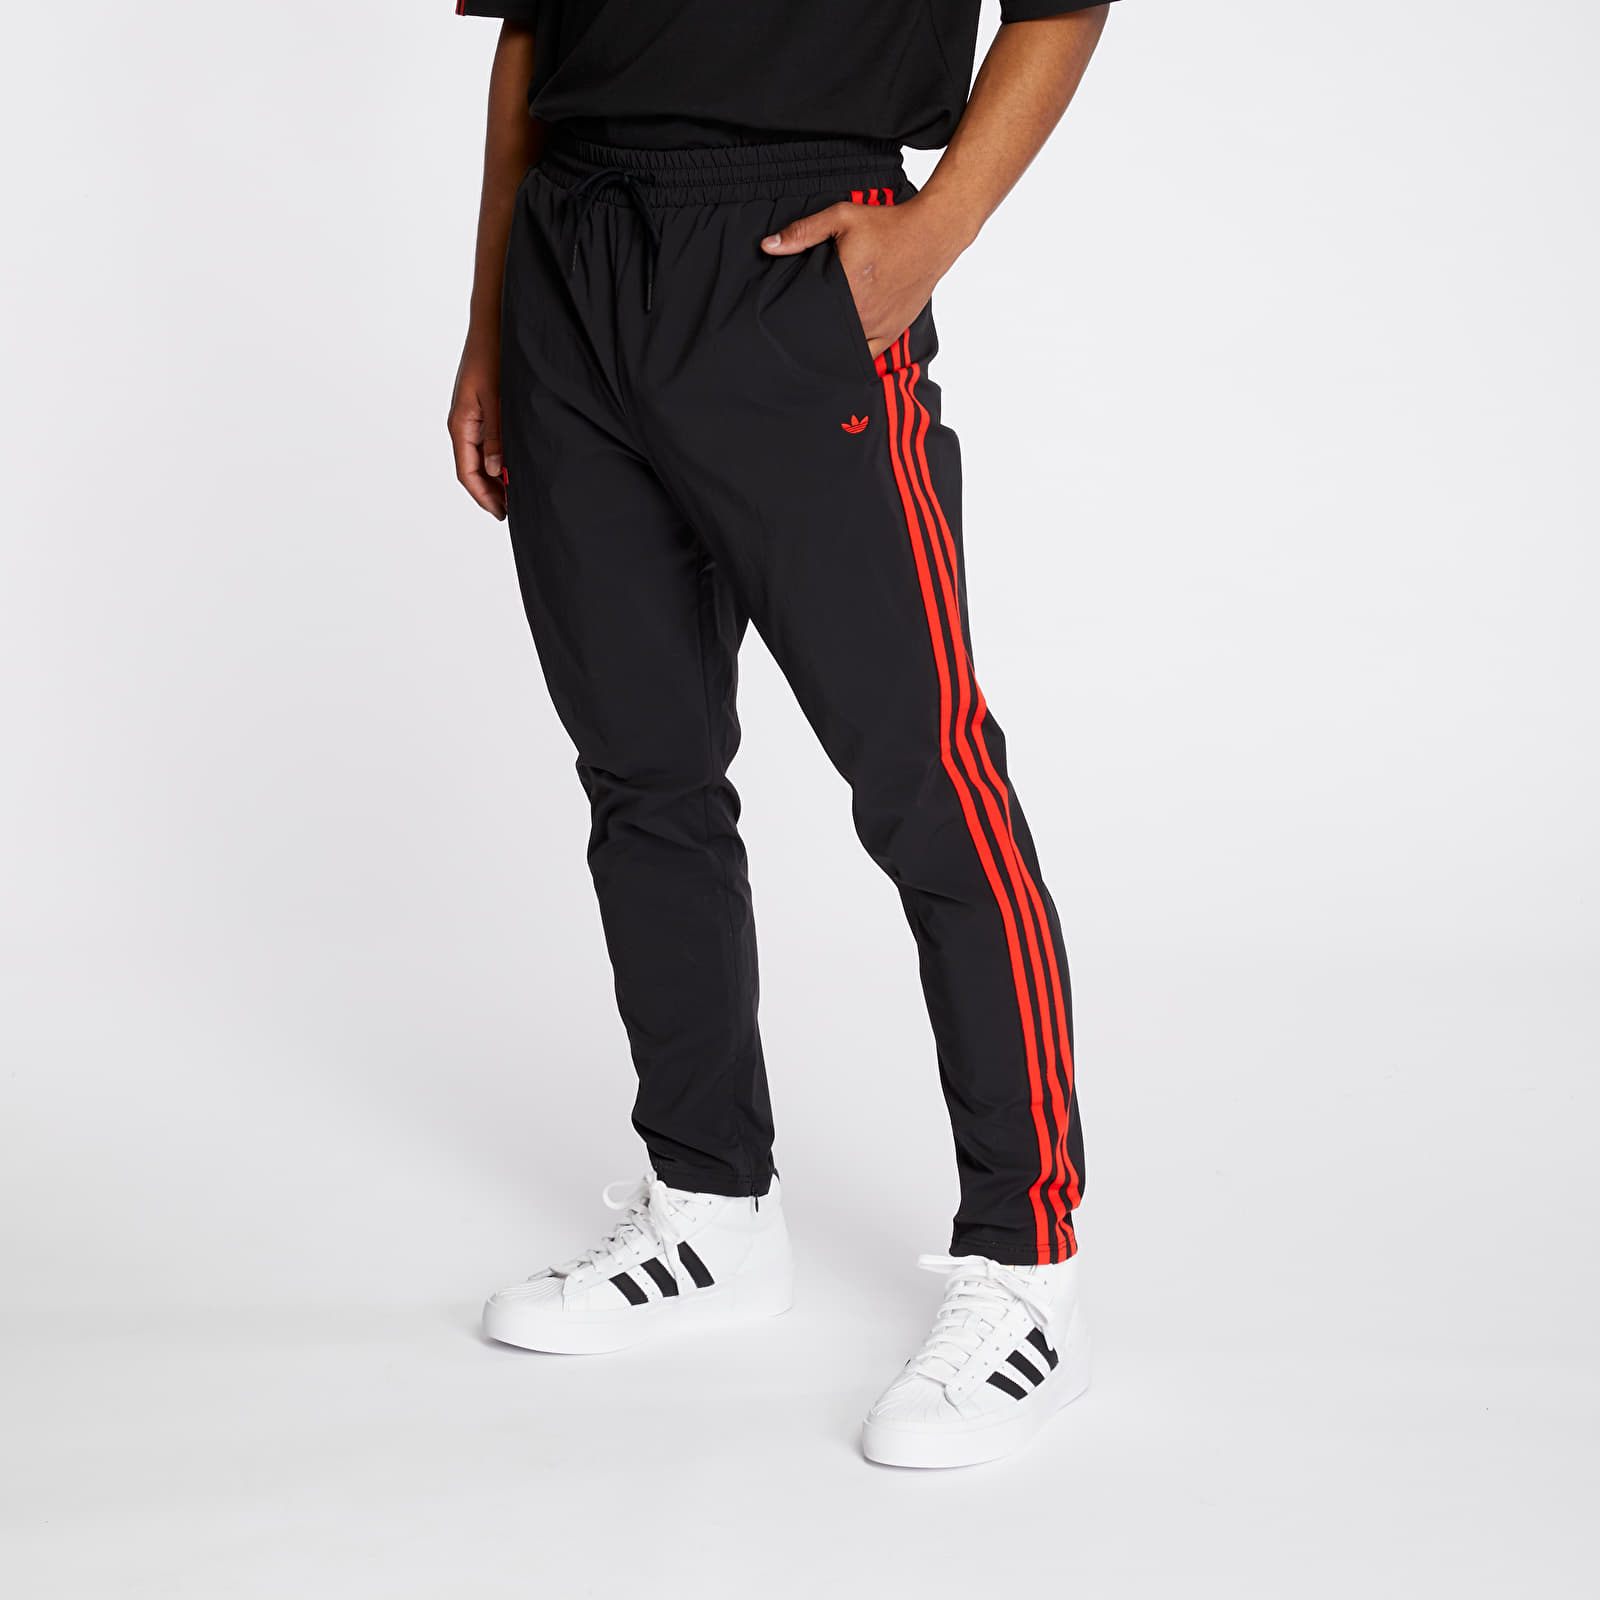 Pants and jeans adidas x 424 Track Pants Black